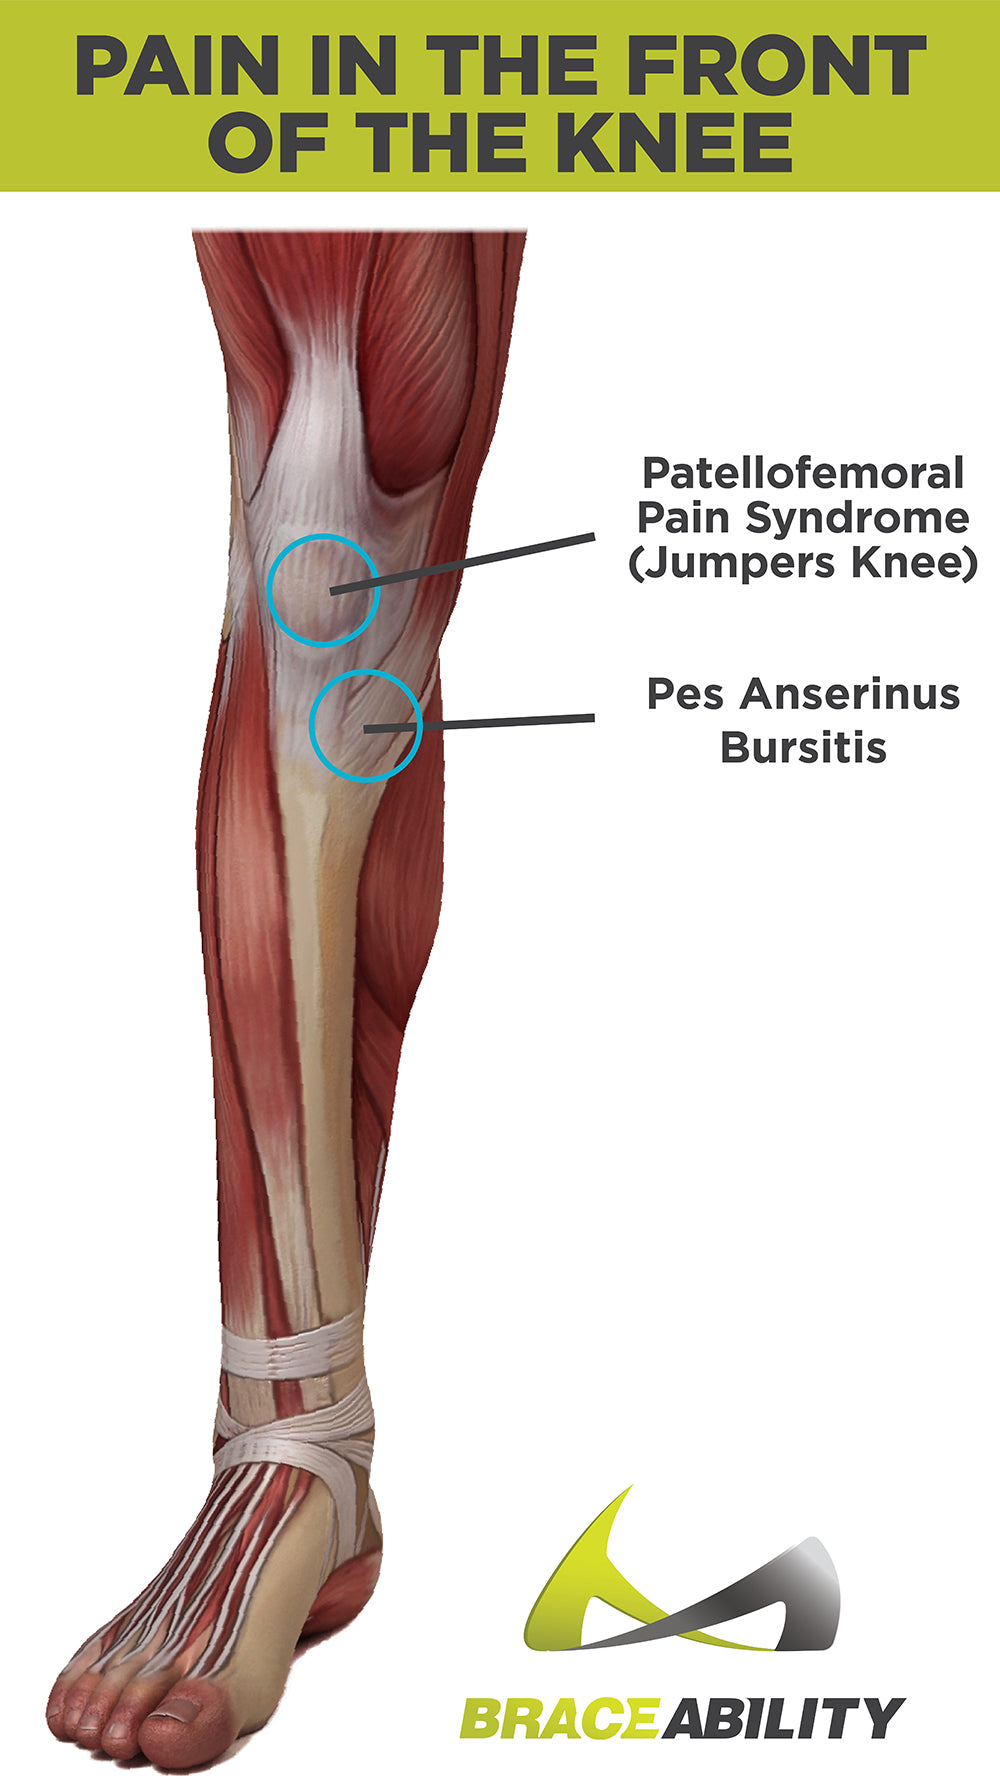 types of pain you feel in the front of your knee - patellofemoral pain syndrome, jumpers knee and pes anserinus bursitis